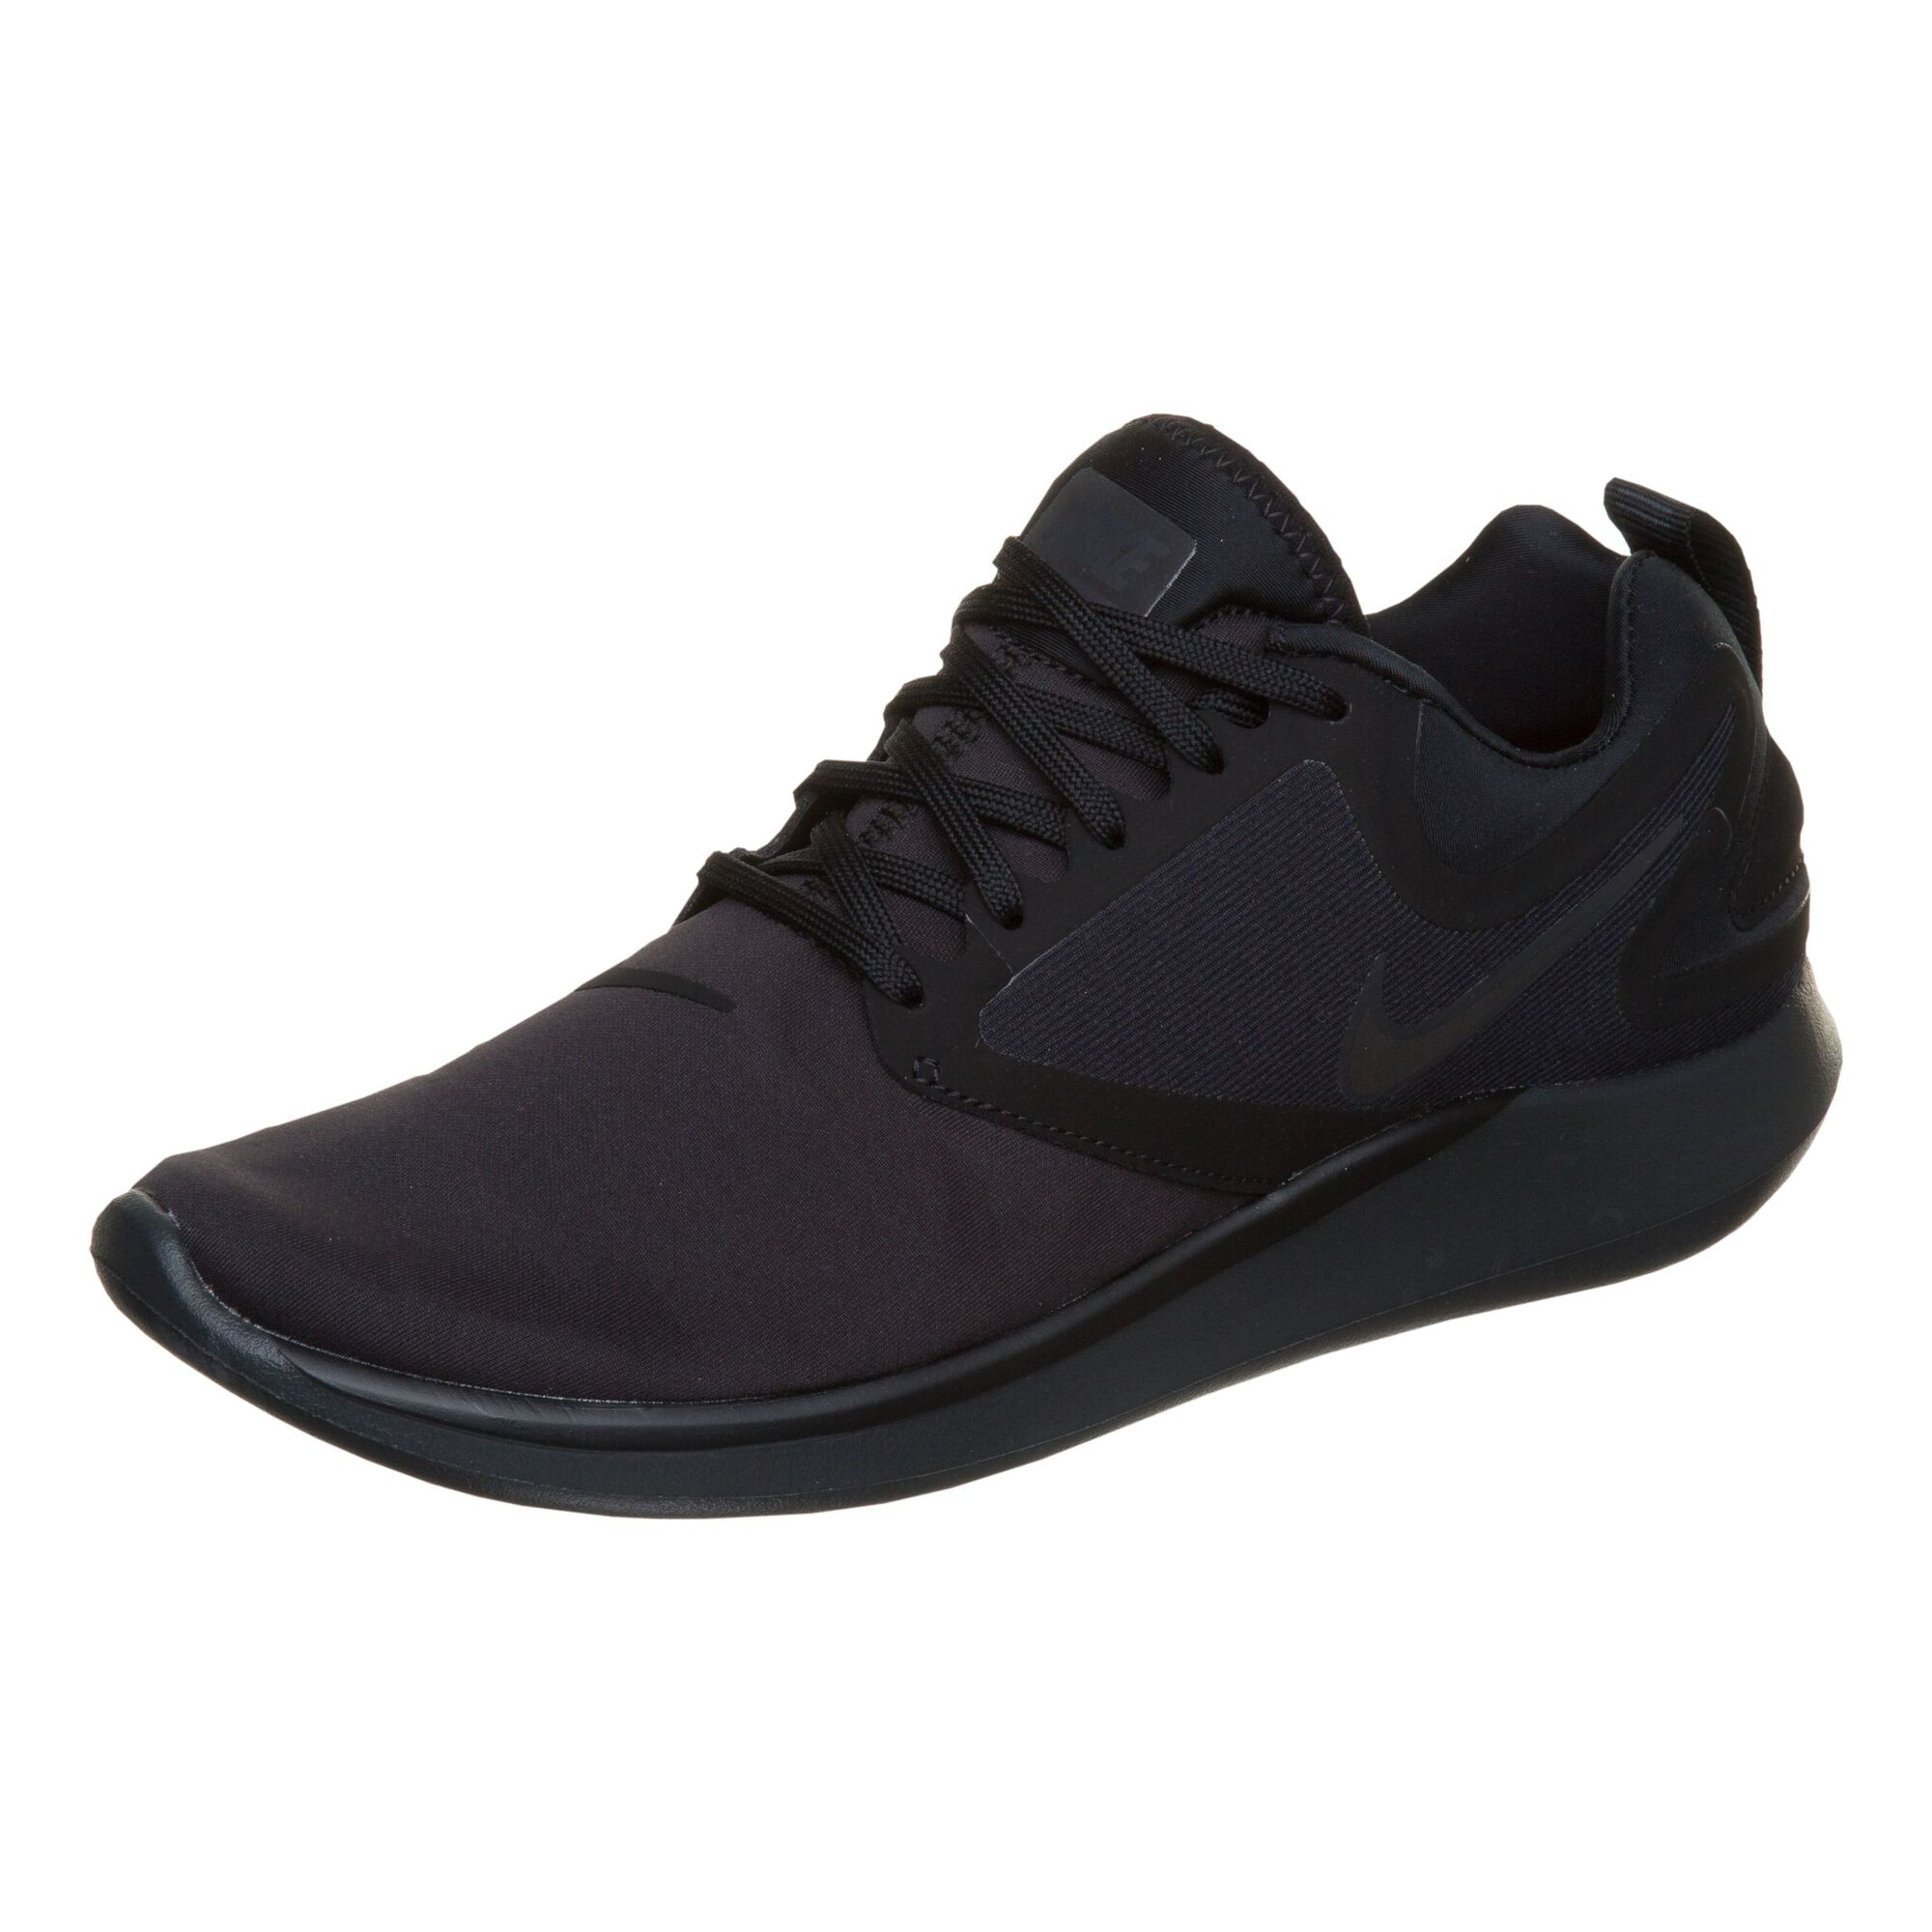 6d93e585e4ef buy Nike LunarSolo Neutral Running Shoe Men - Black